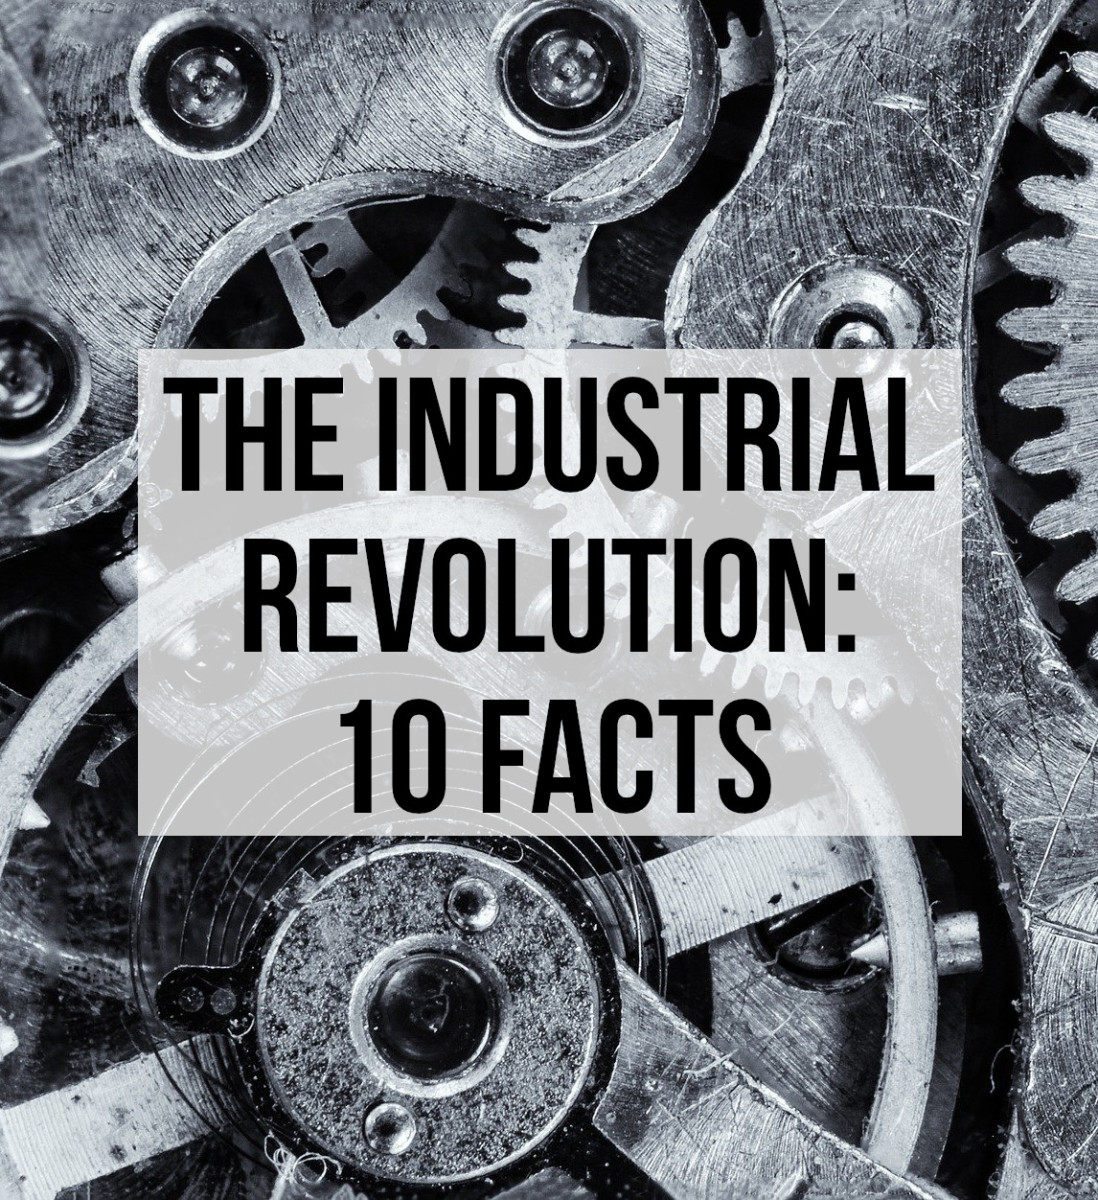 10 Facts on the Industrial Revolution